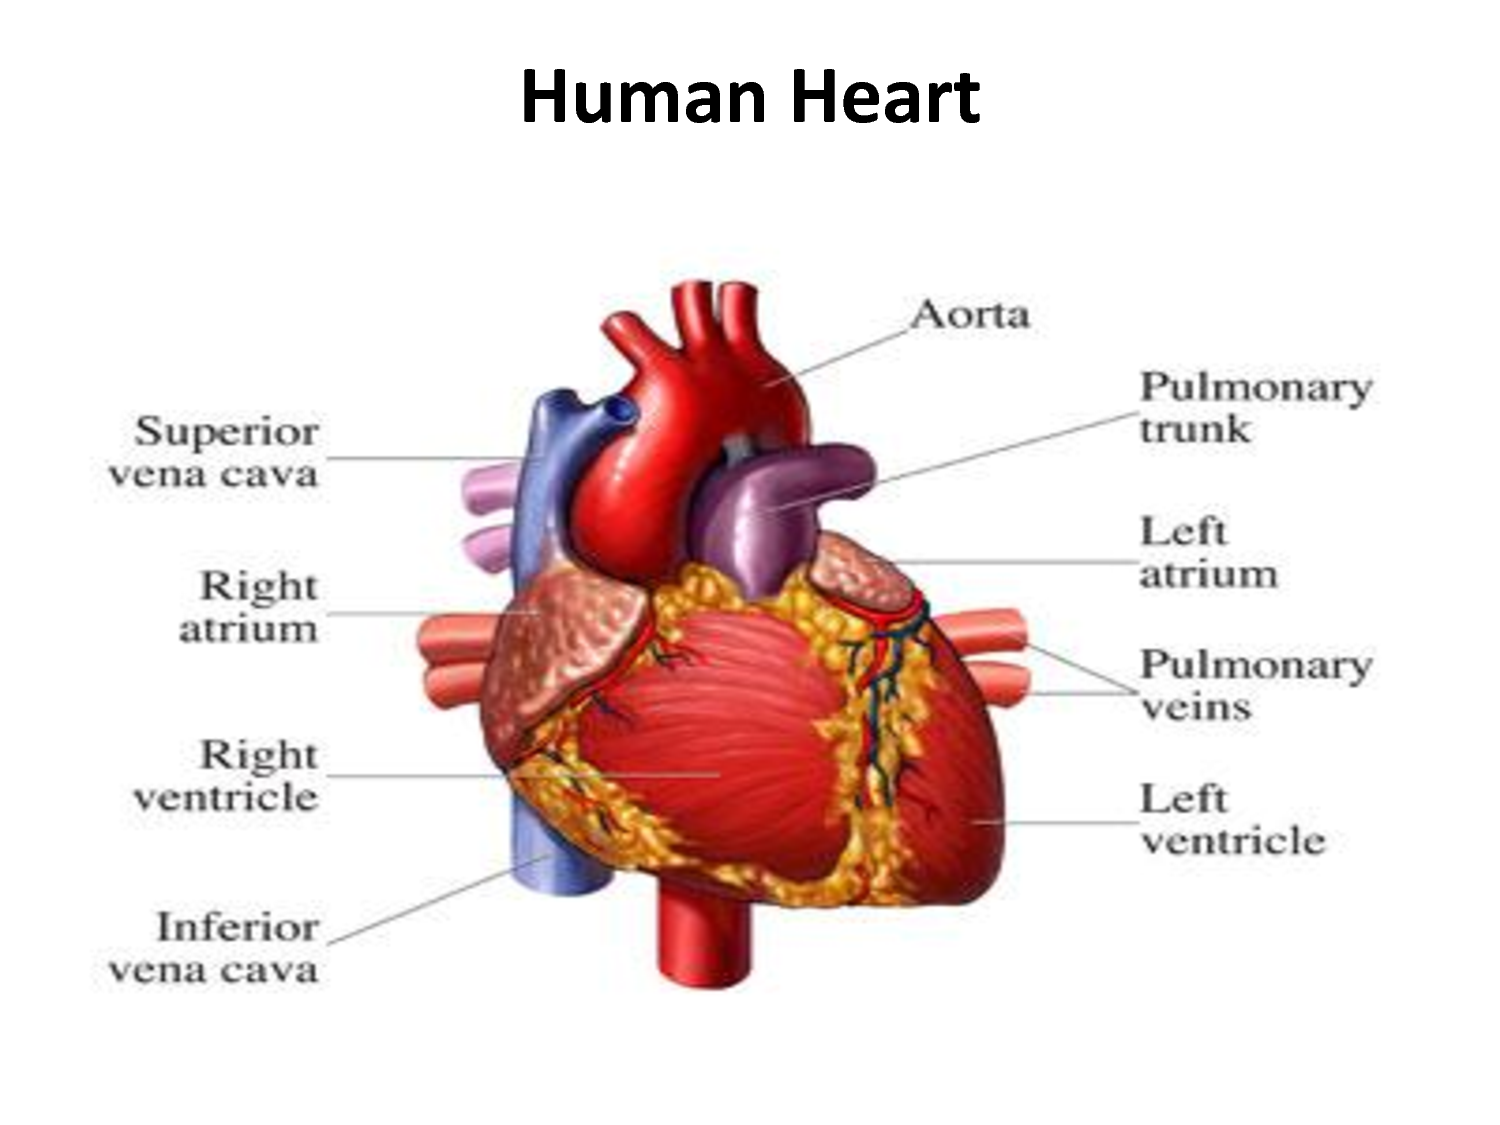 The Human Heart Cpr Certification Online First Aid Training Class